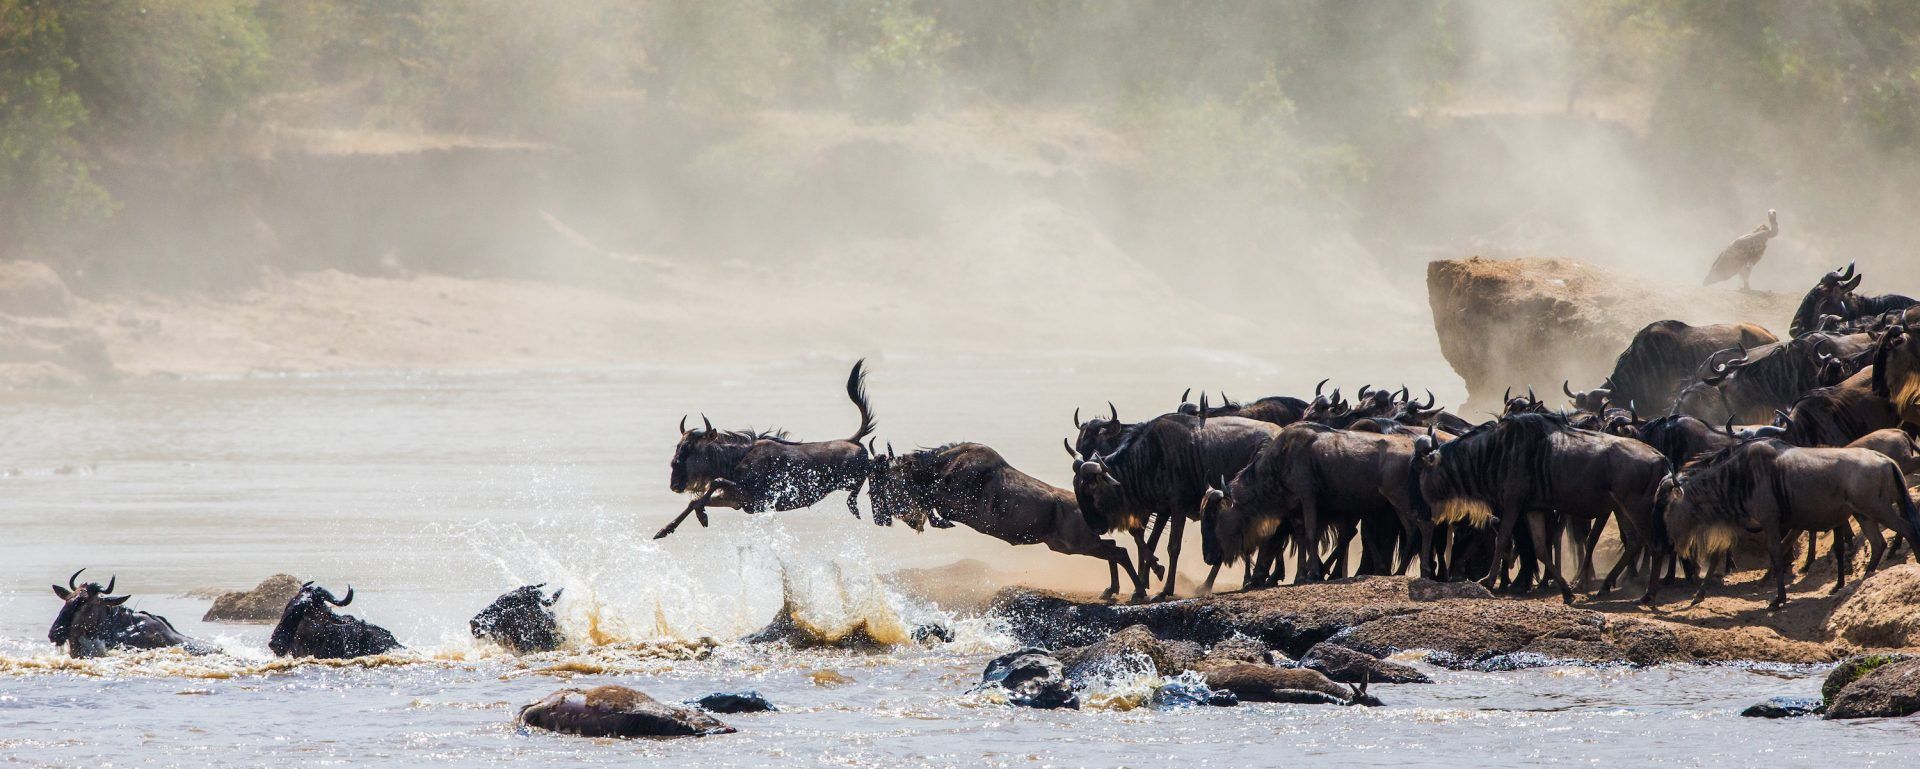 wildebeest in Masai Mara for an incentive experience in Kenya